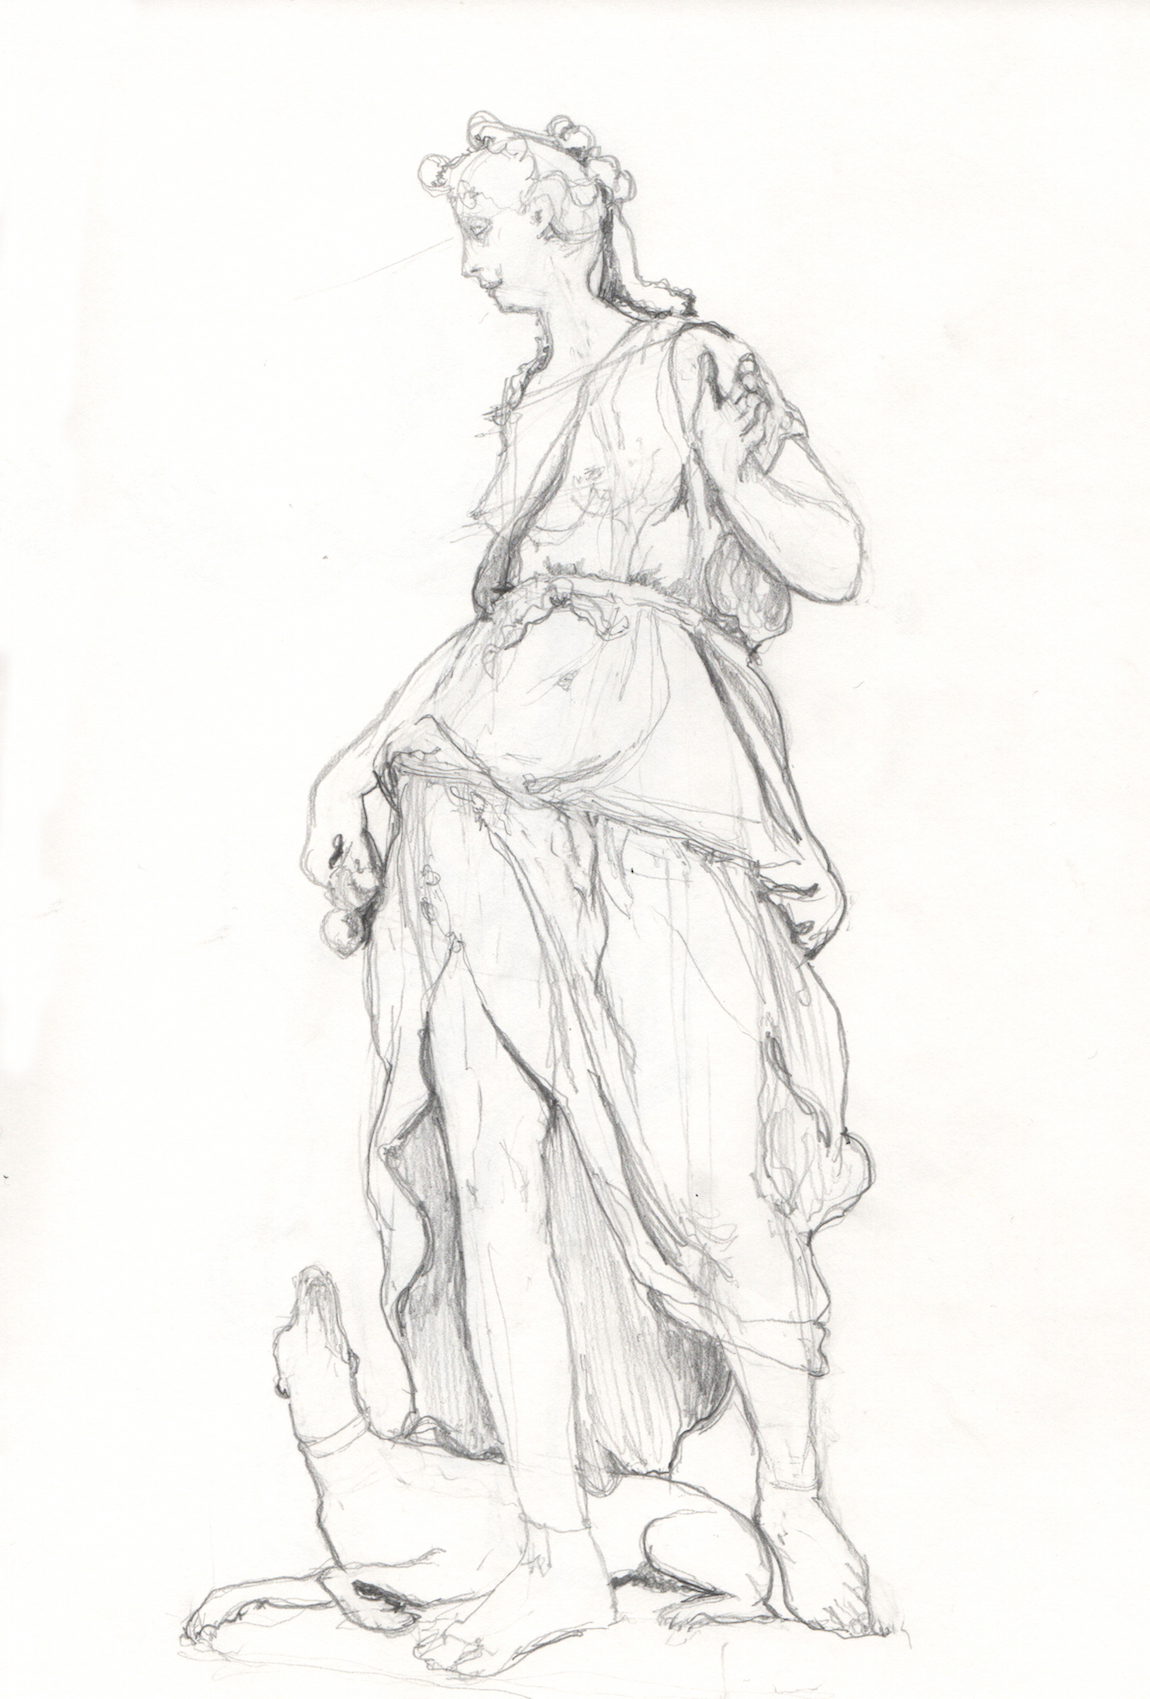 La Compagne de Diana, pencil sketch, 2017